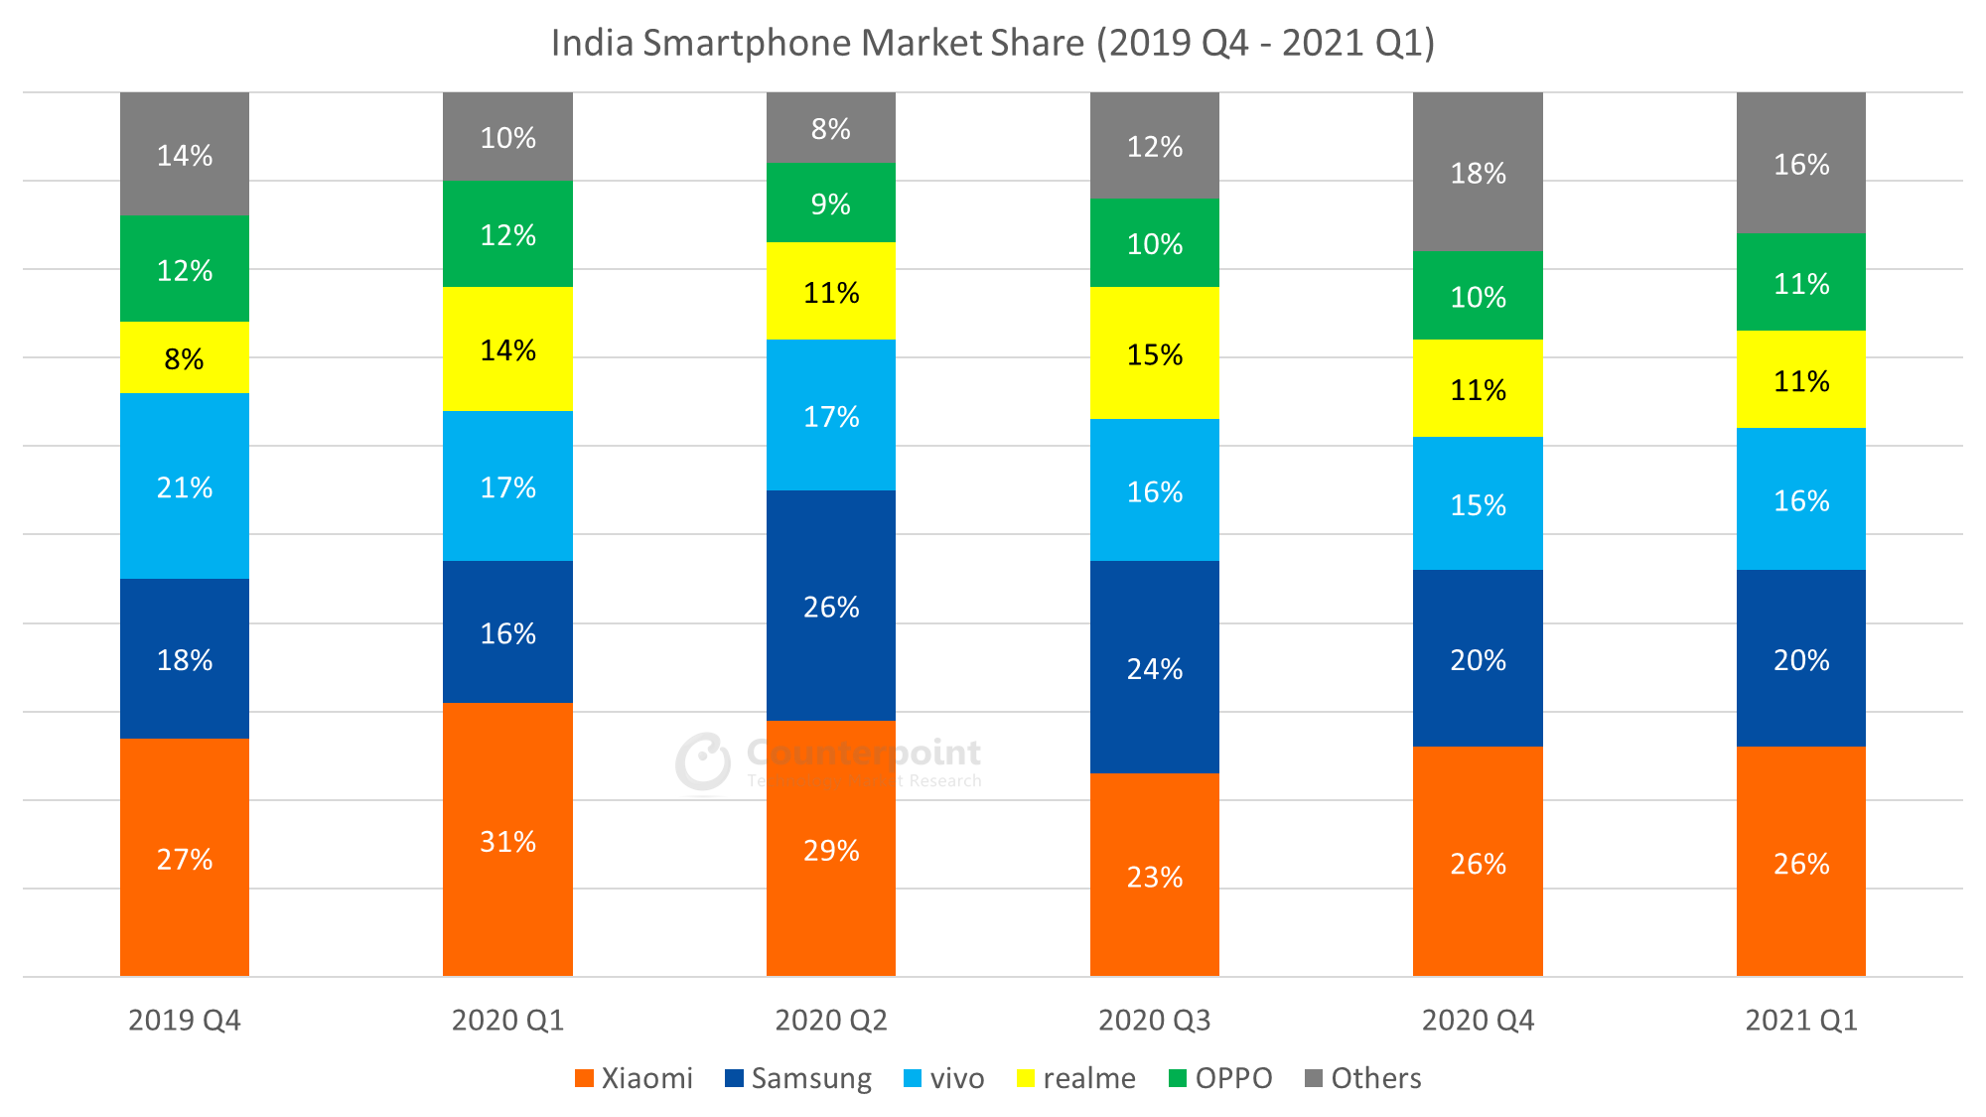 Counterpoint-Research-India-Smartphone-Quarterly-Market-Data-2019Q4-2021Q1